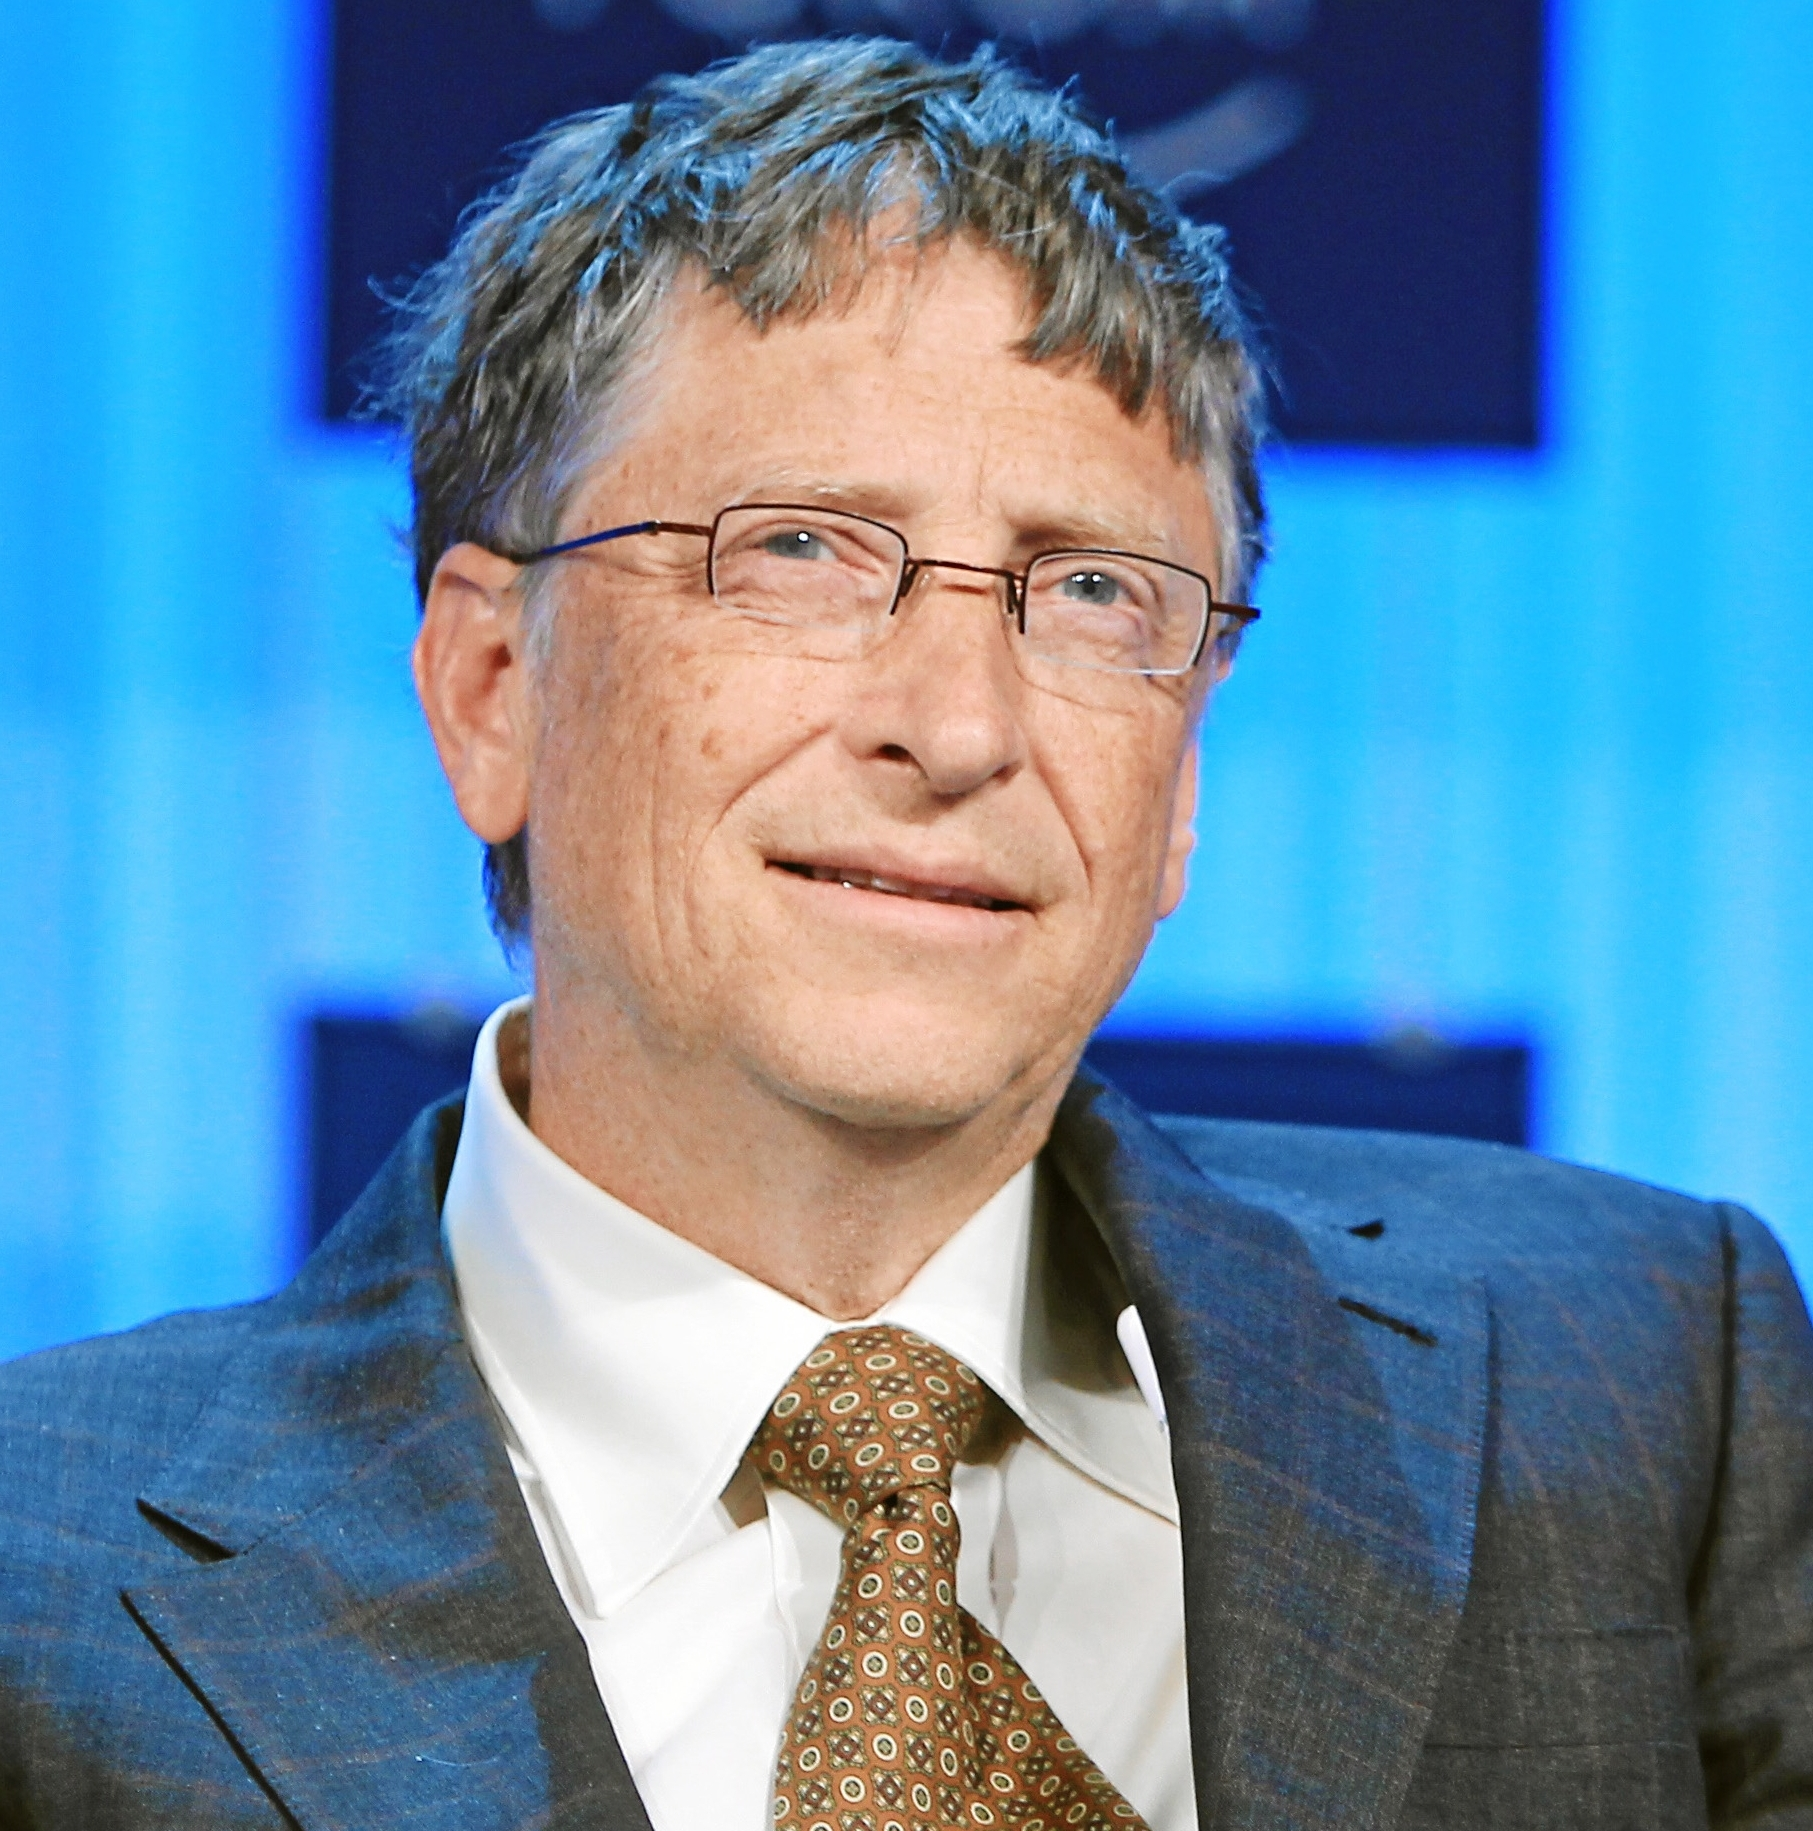 Bill Gates has donated $28 billion in the last 10 years and saved